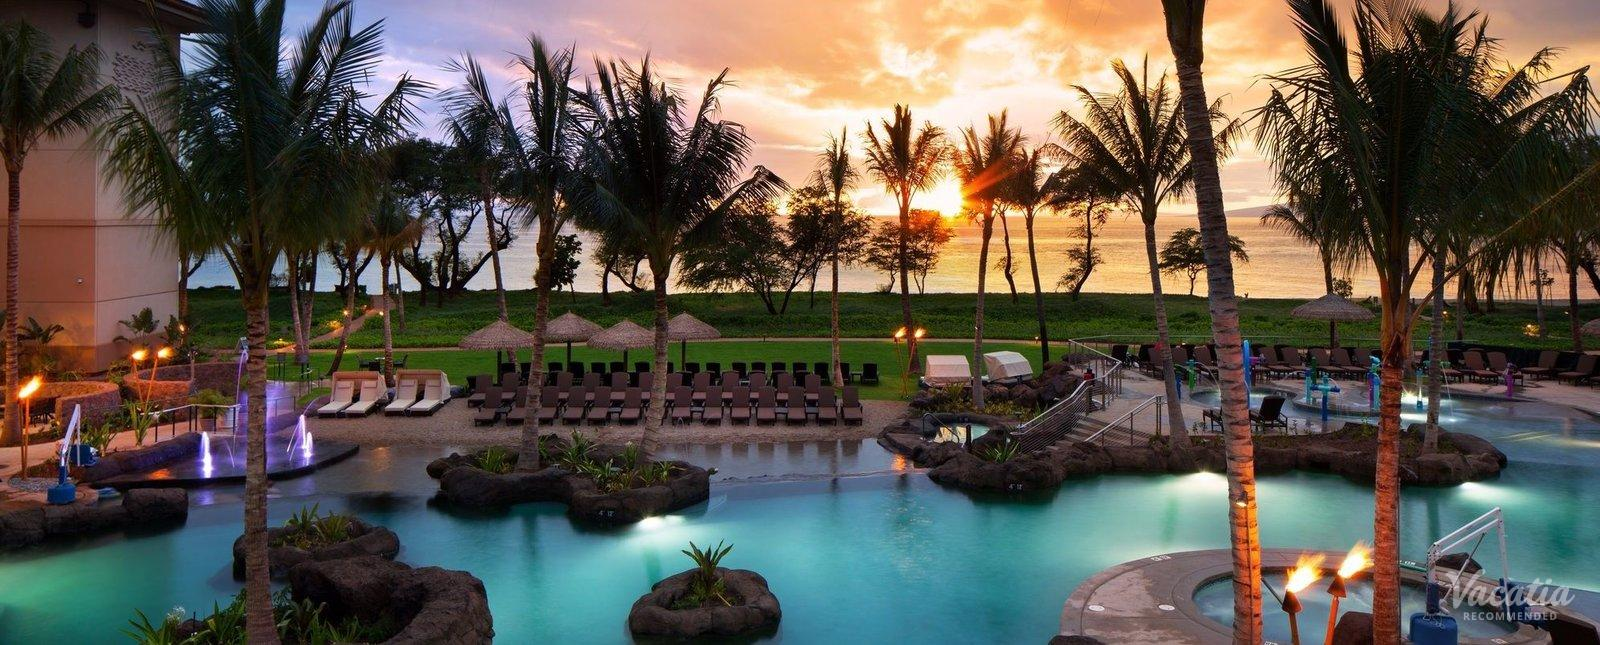 The Westin Nanea Ocean Villas Pools